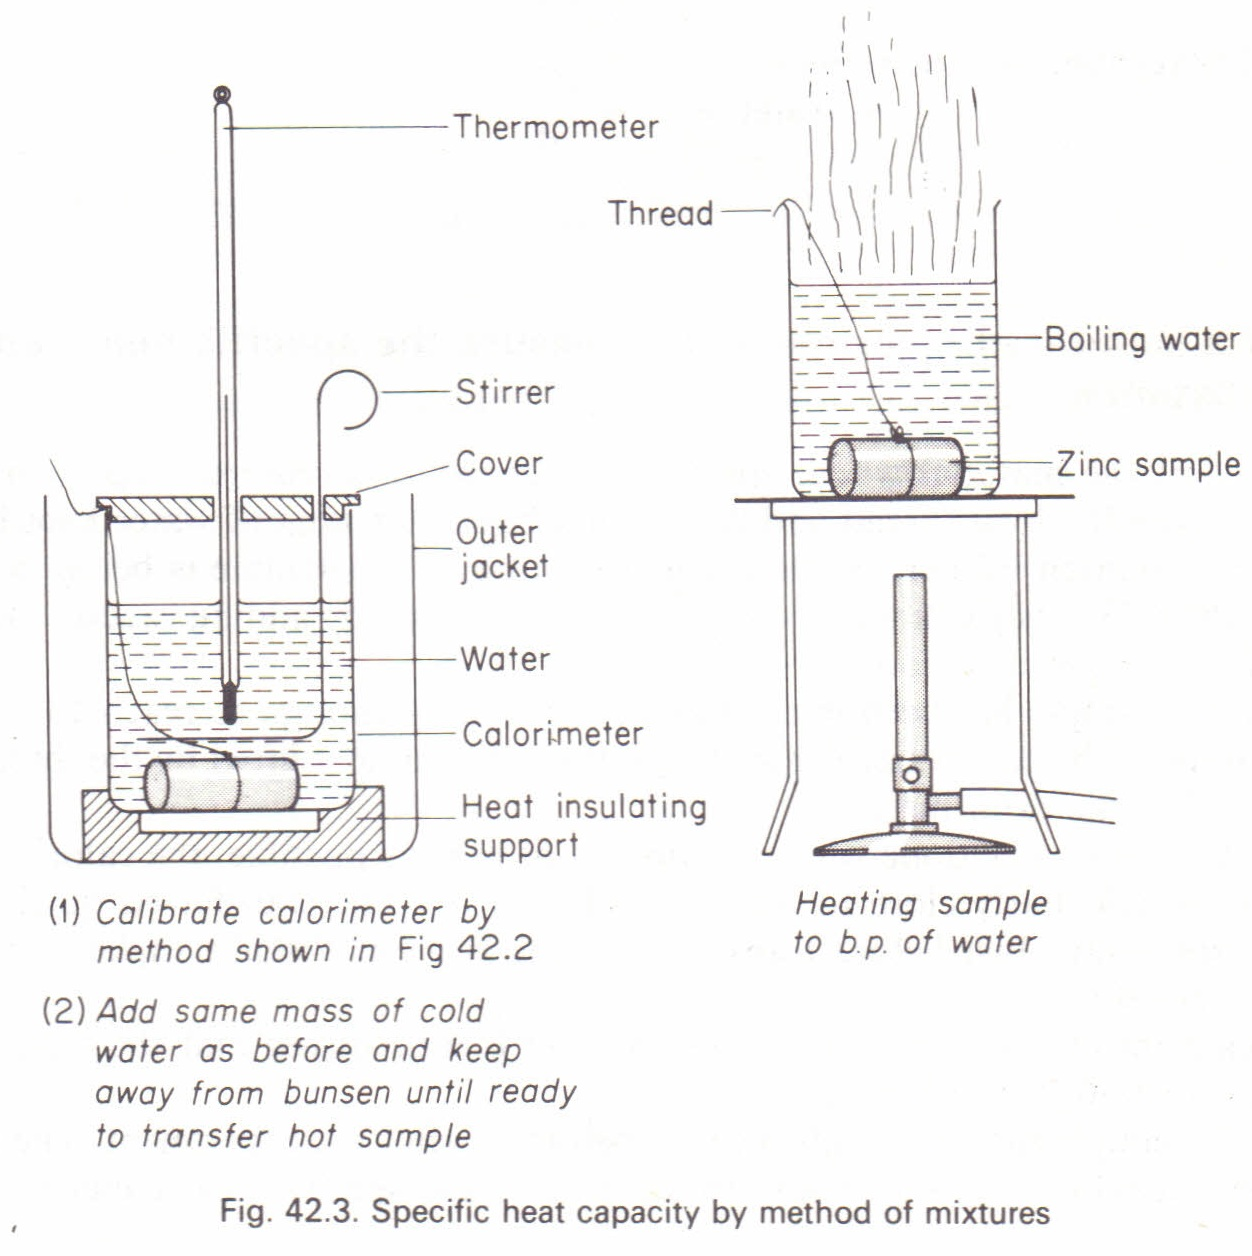 To Measure The Specific Heat Capacity By The Method Of